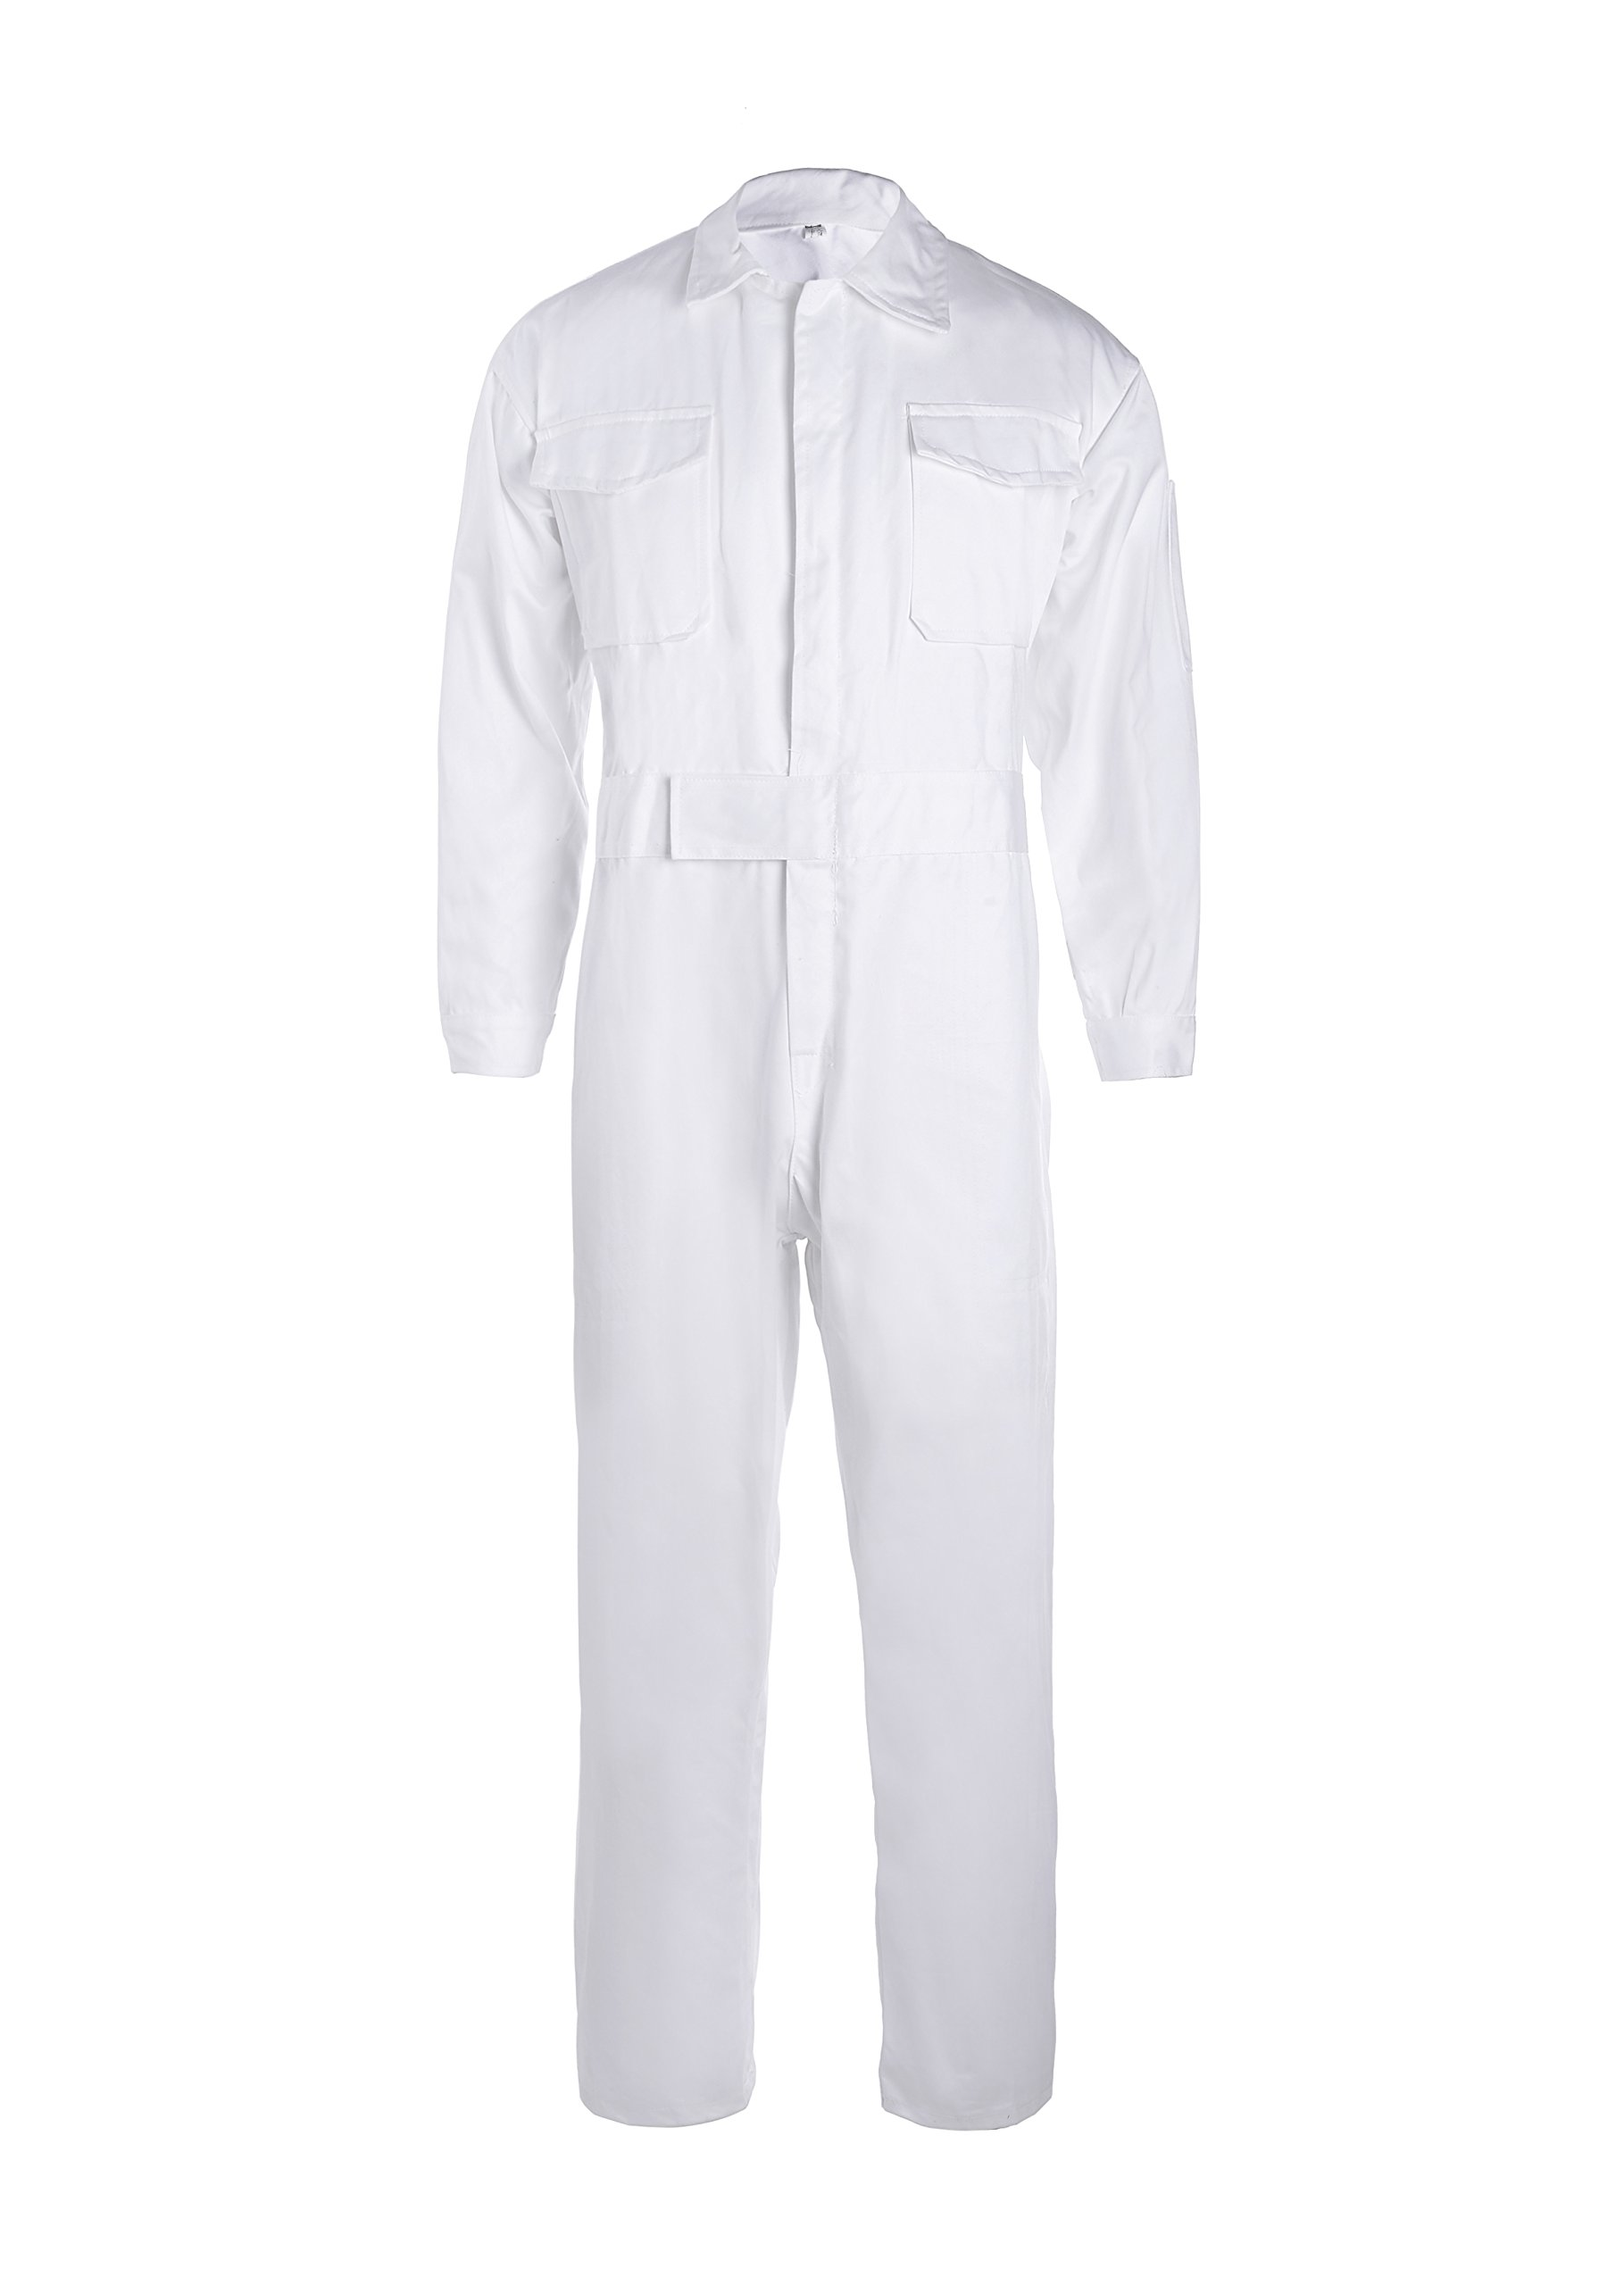 XinAndy White Cotton Work Coverall (L)